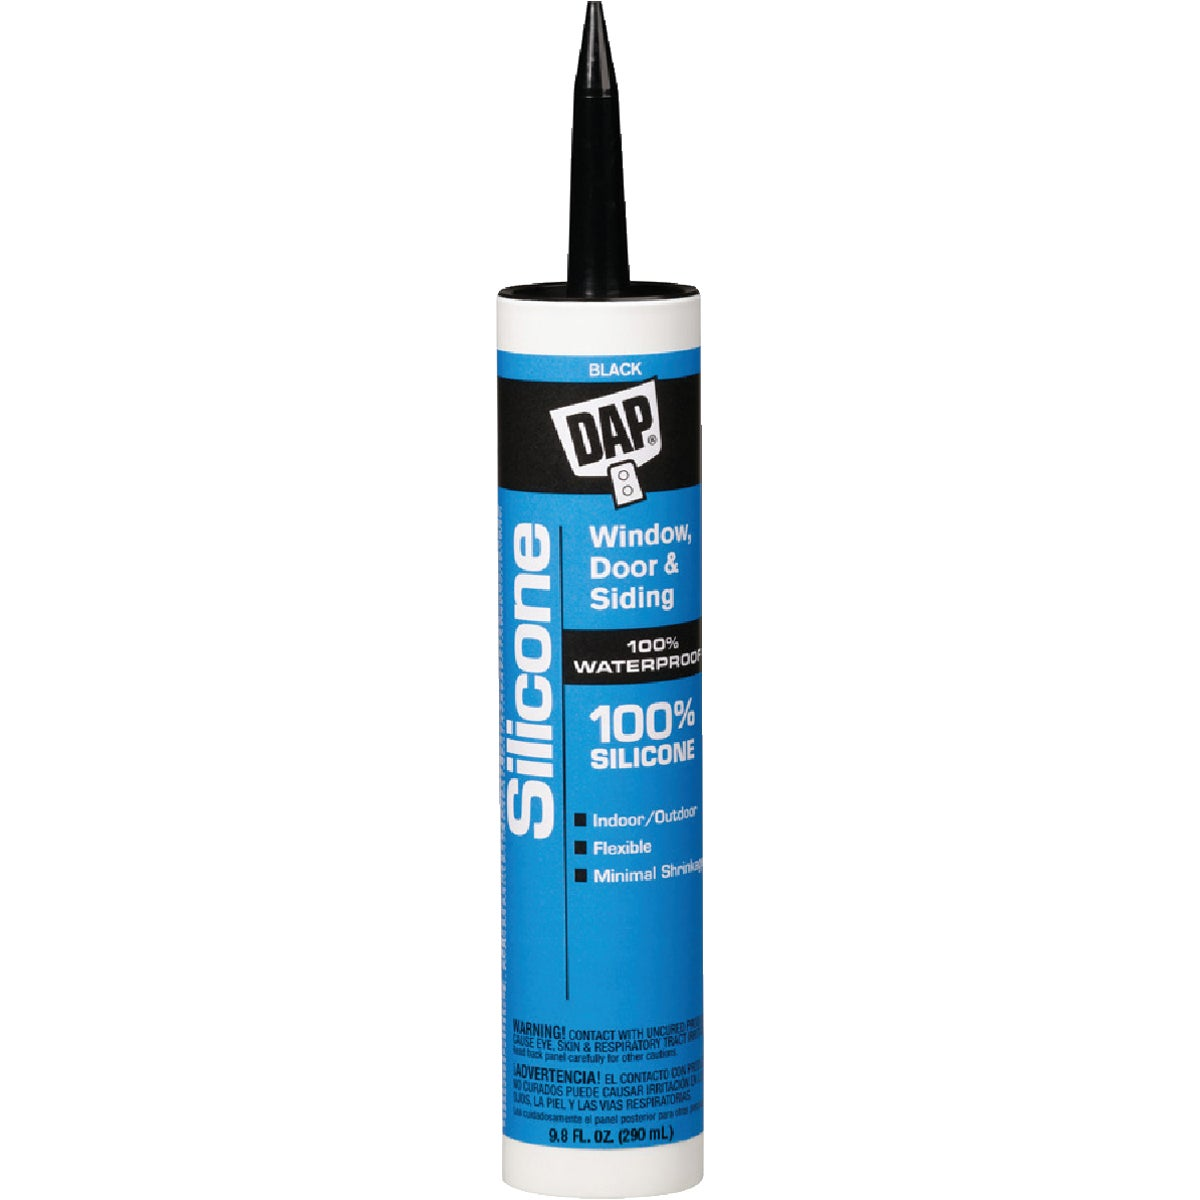 BLACK SILICONE SEALANT - 08642 by Dap Inc